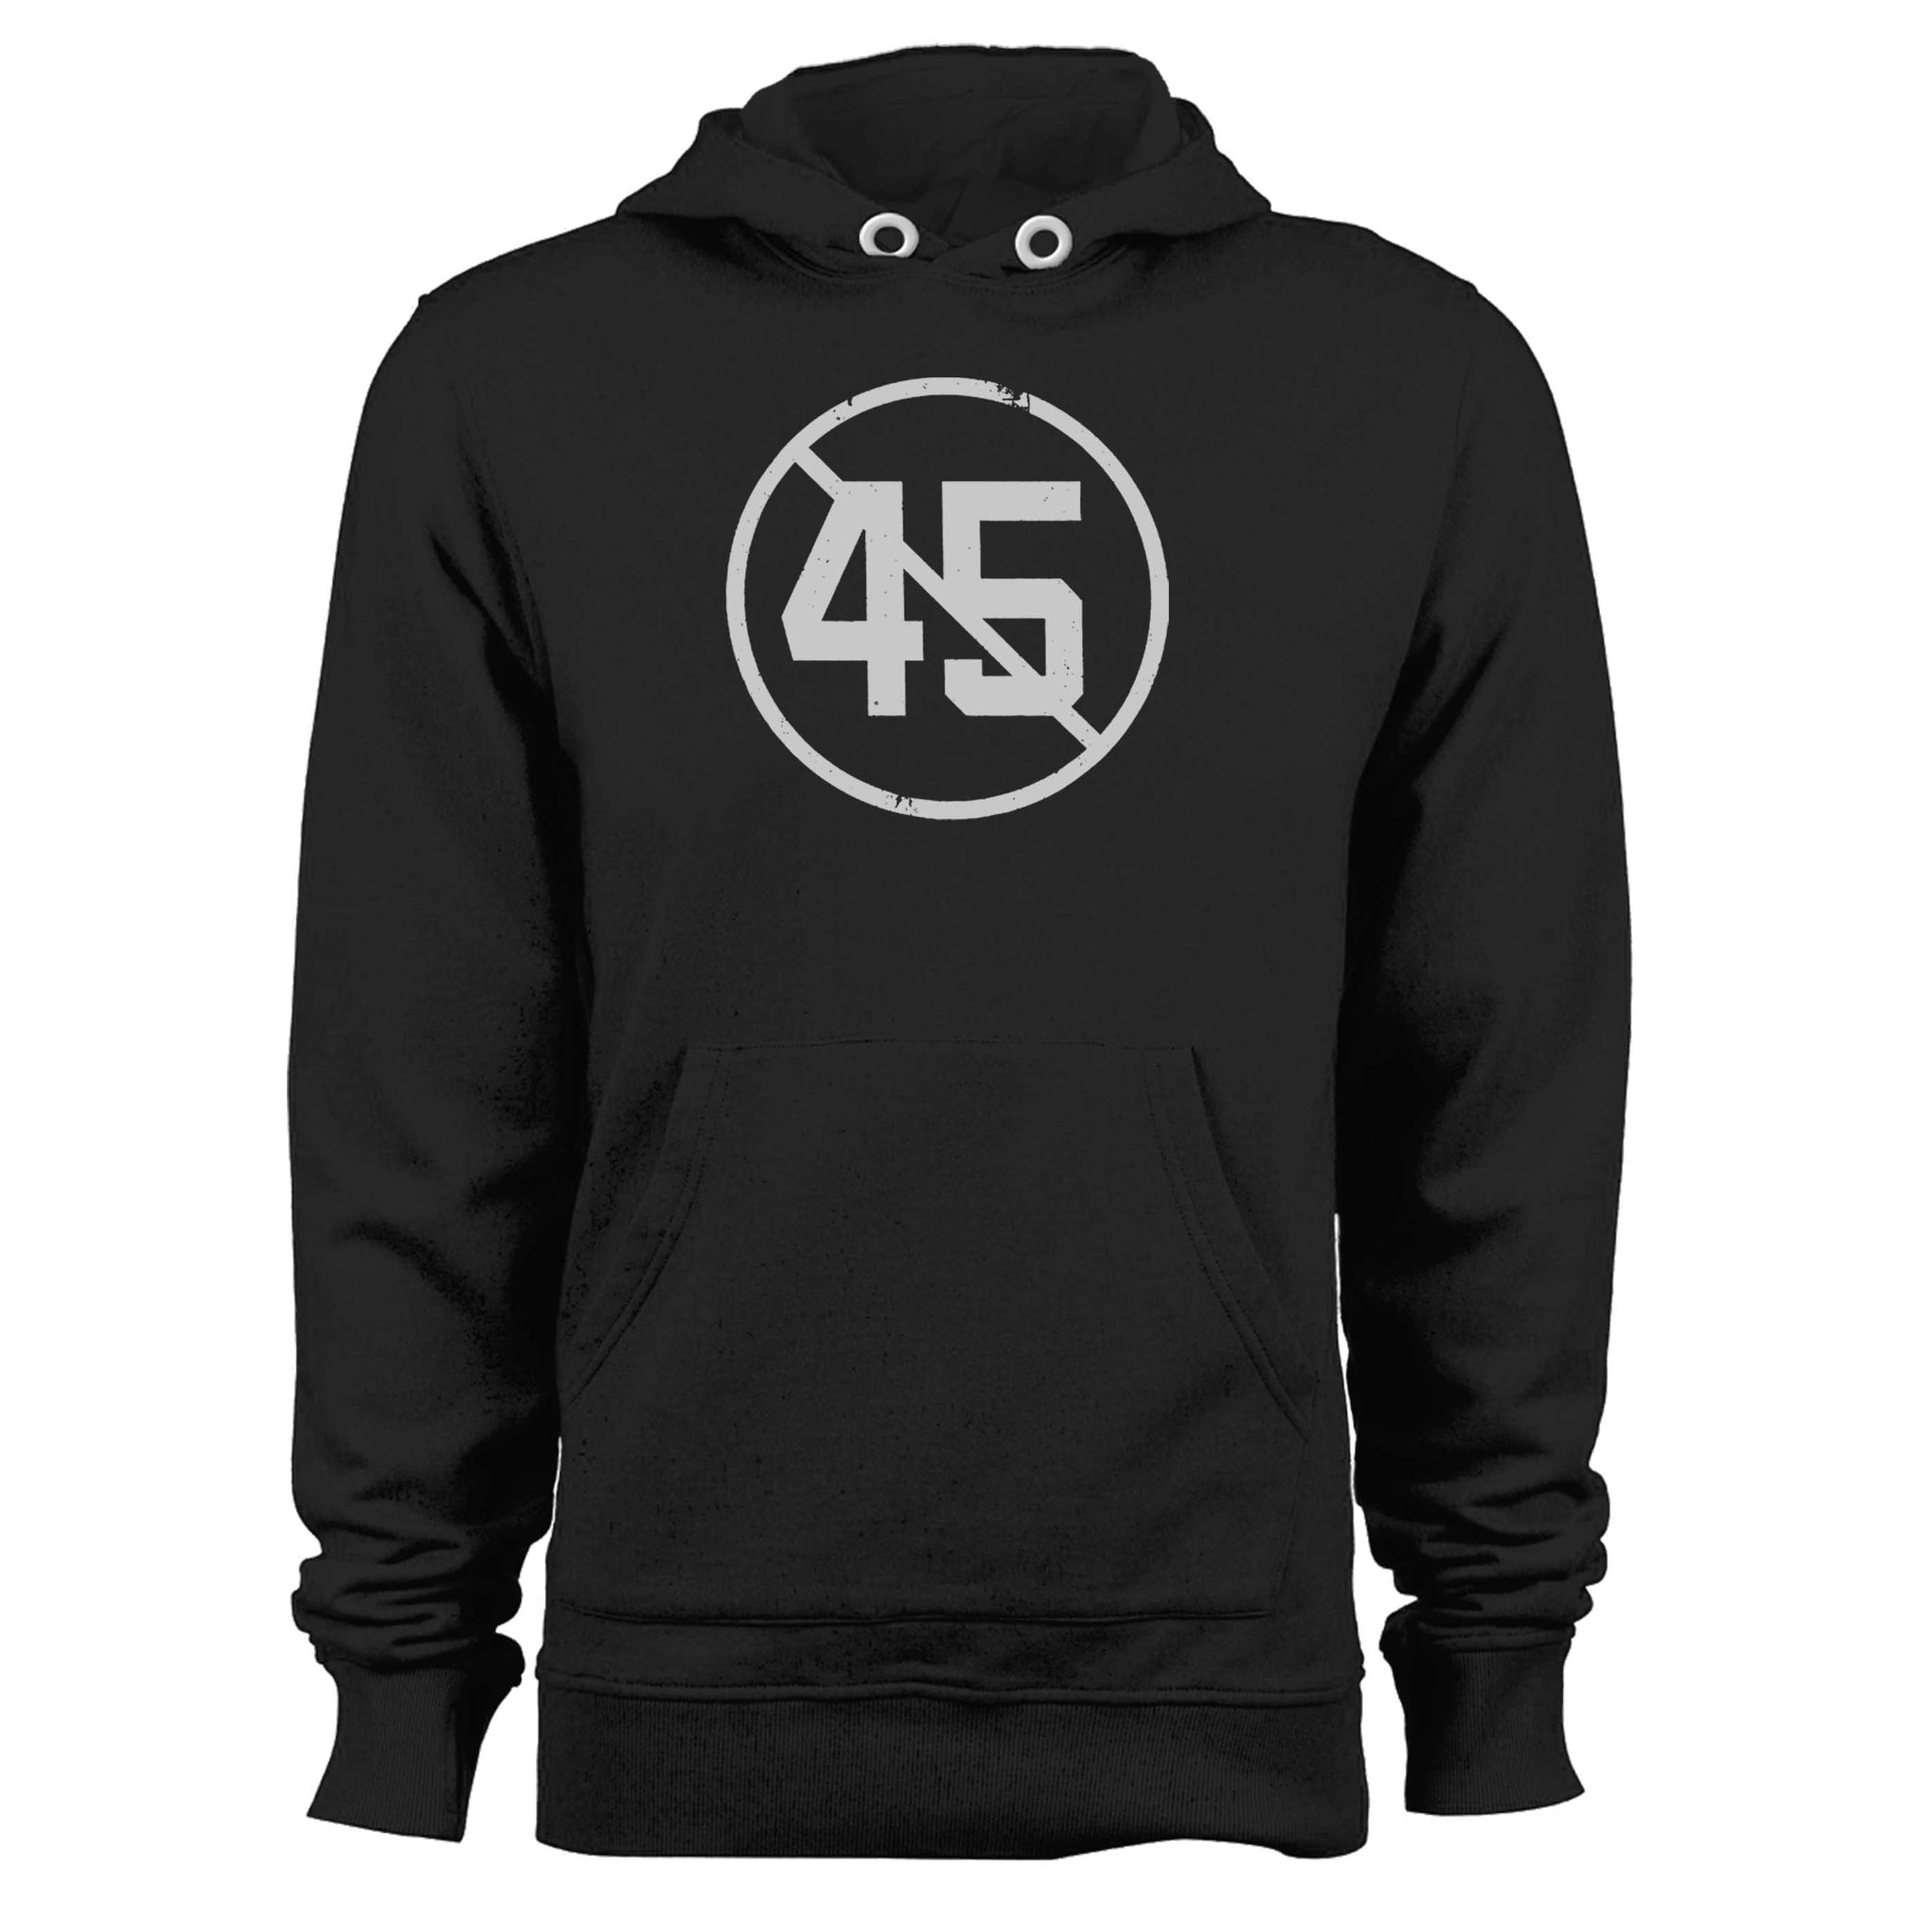 Say No To 45 Unisex Hoodie